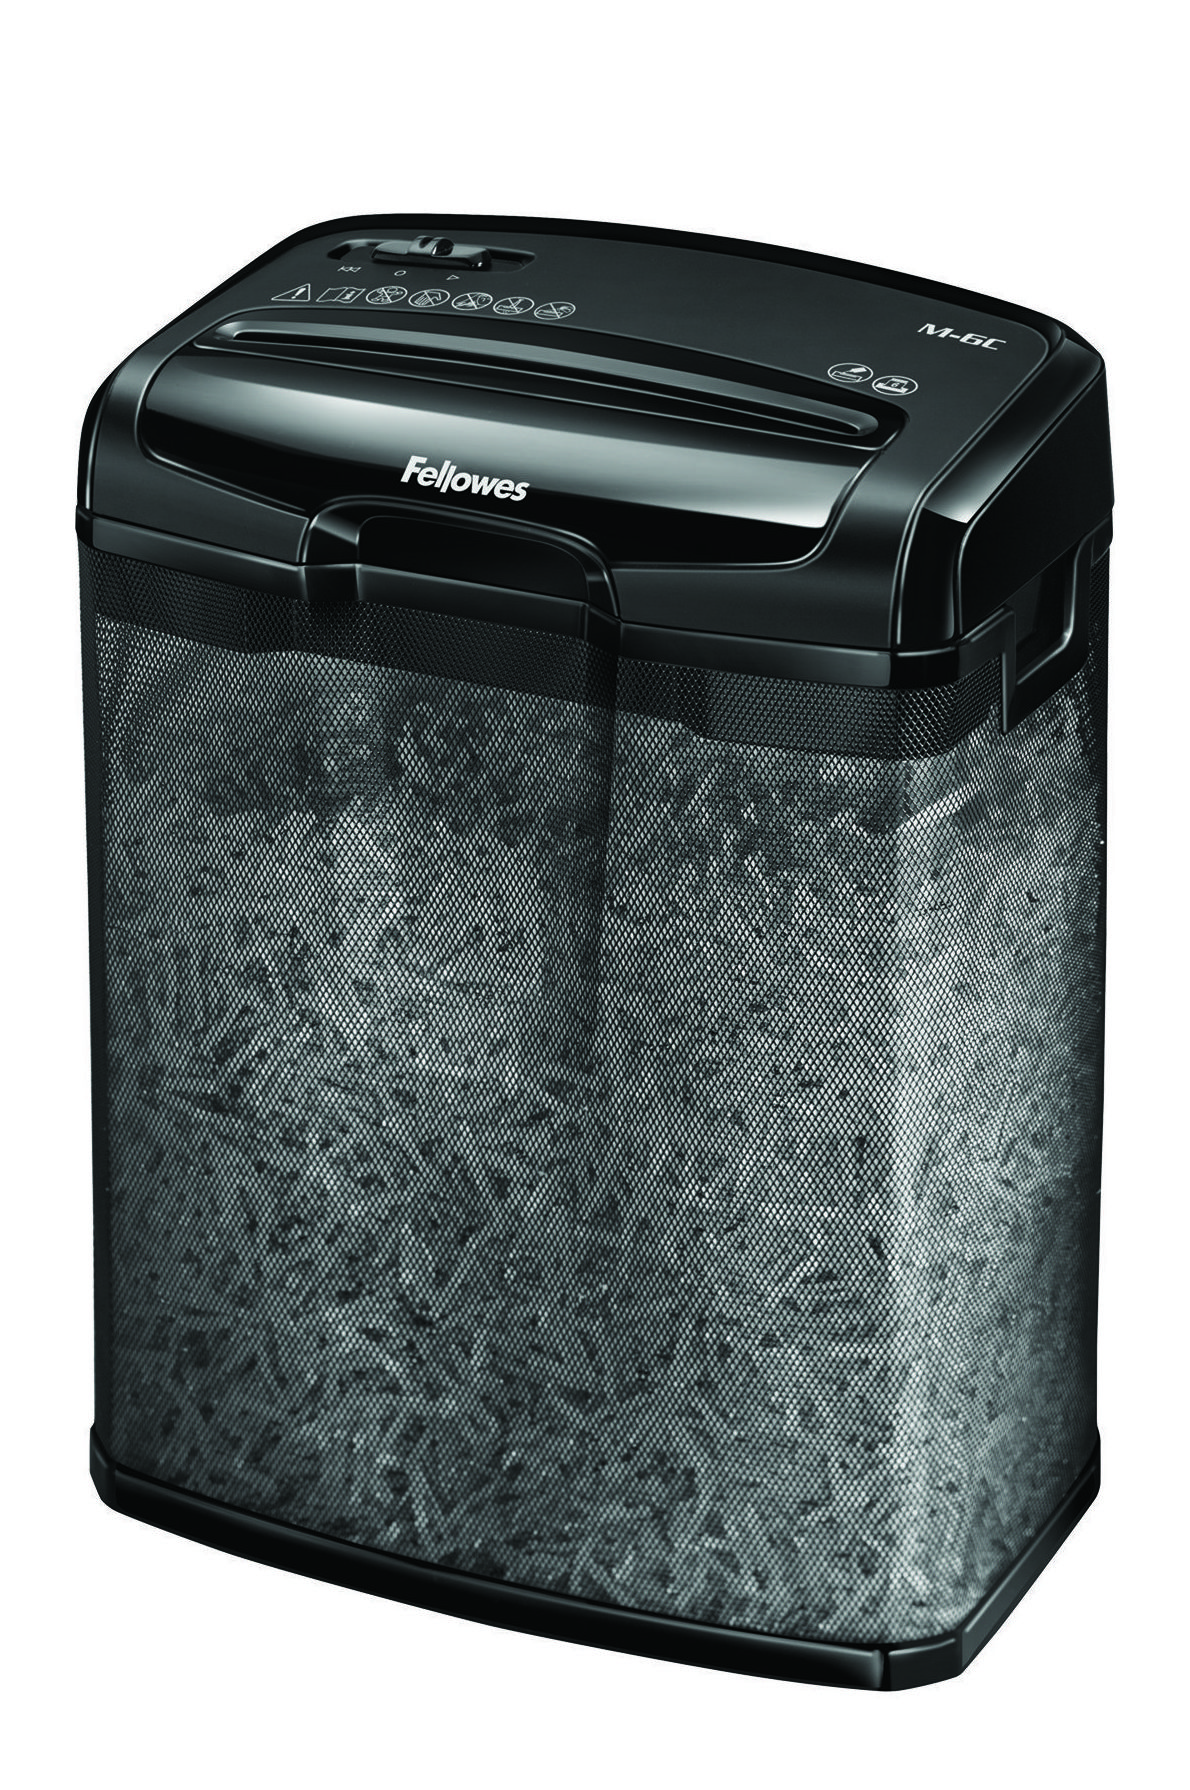 Destructora Fellowes M-6C